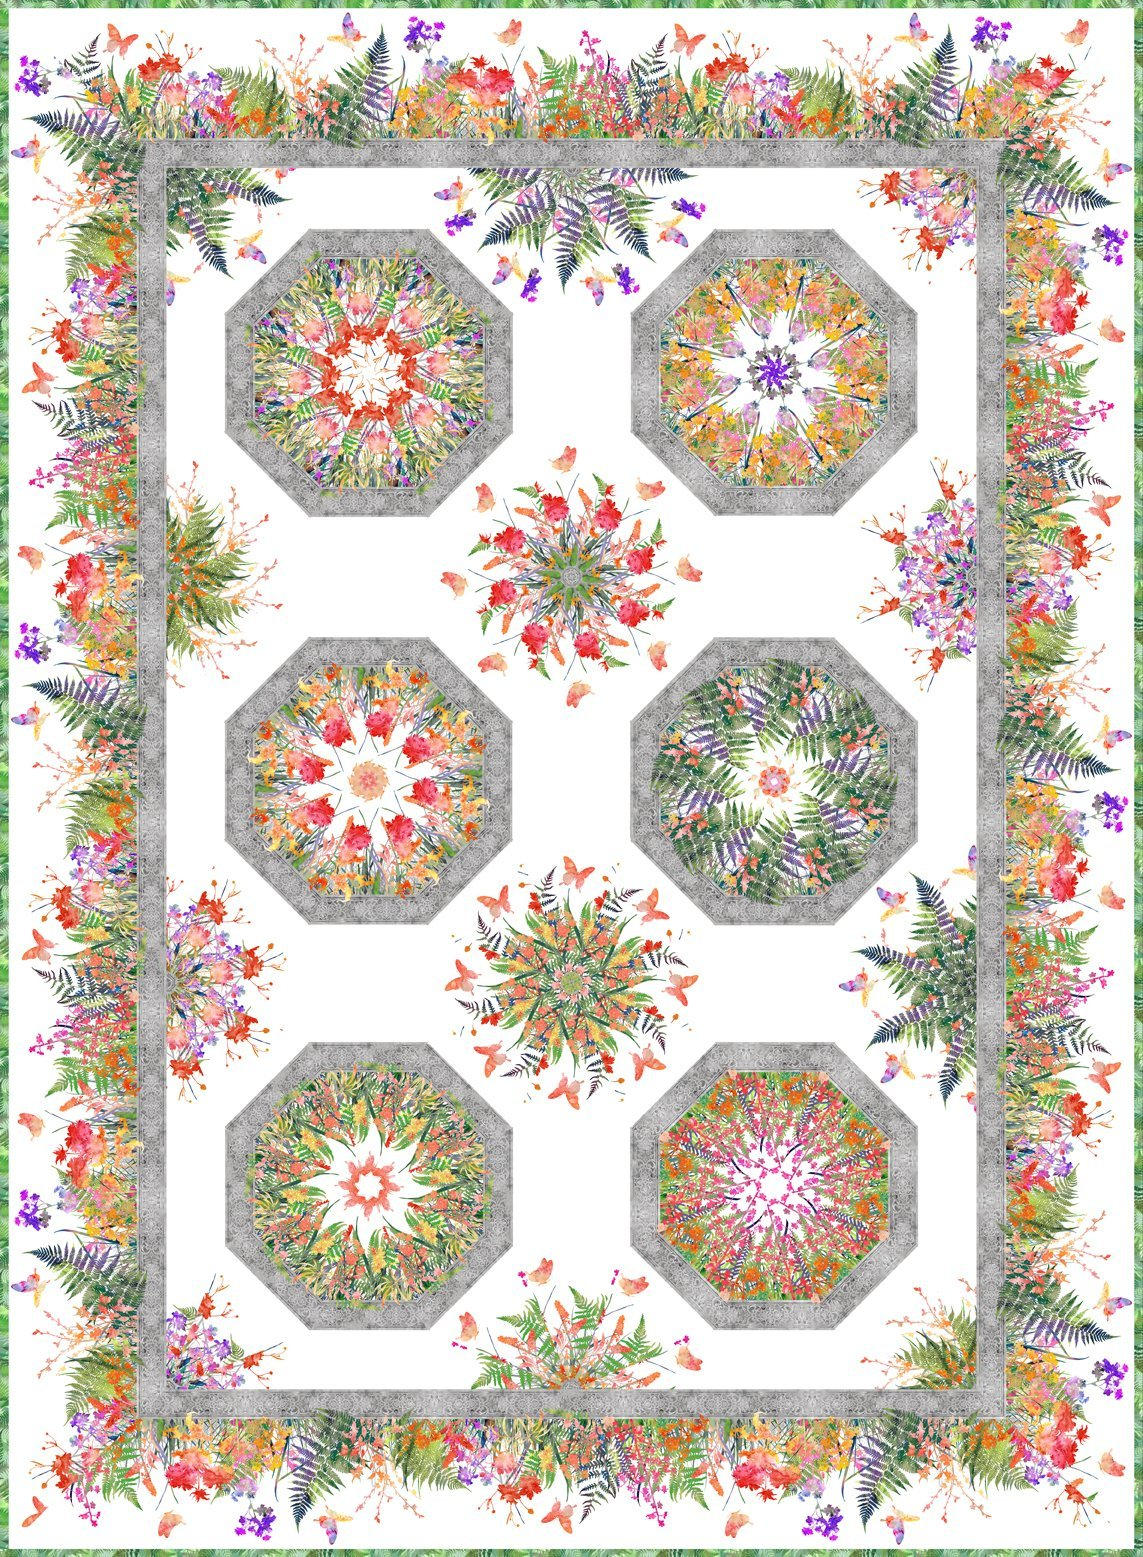 Garden of Dreams Kaleidoscope Quilt Kit